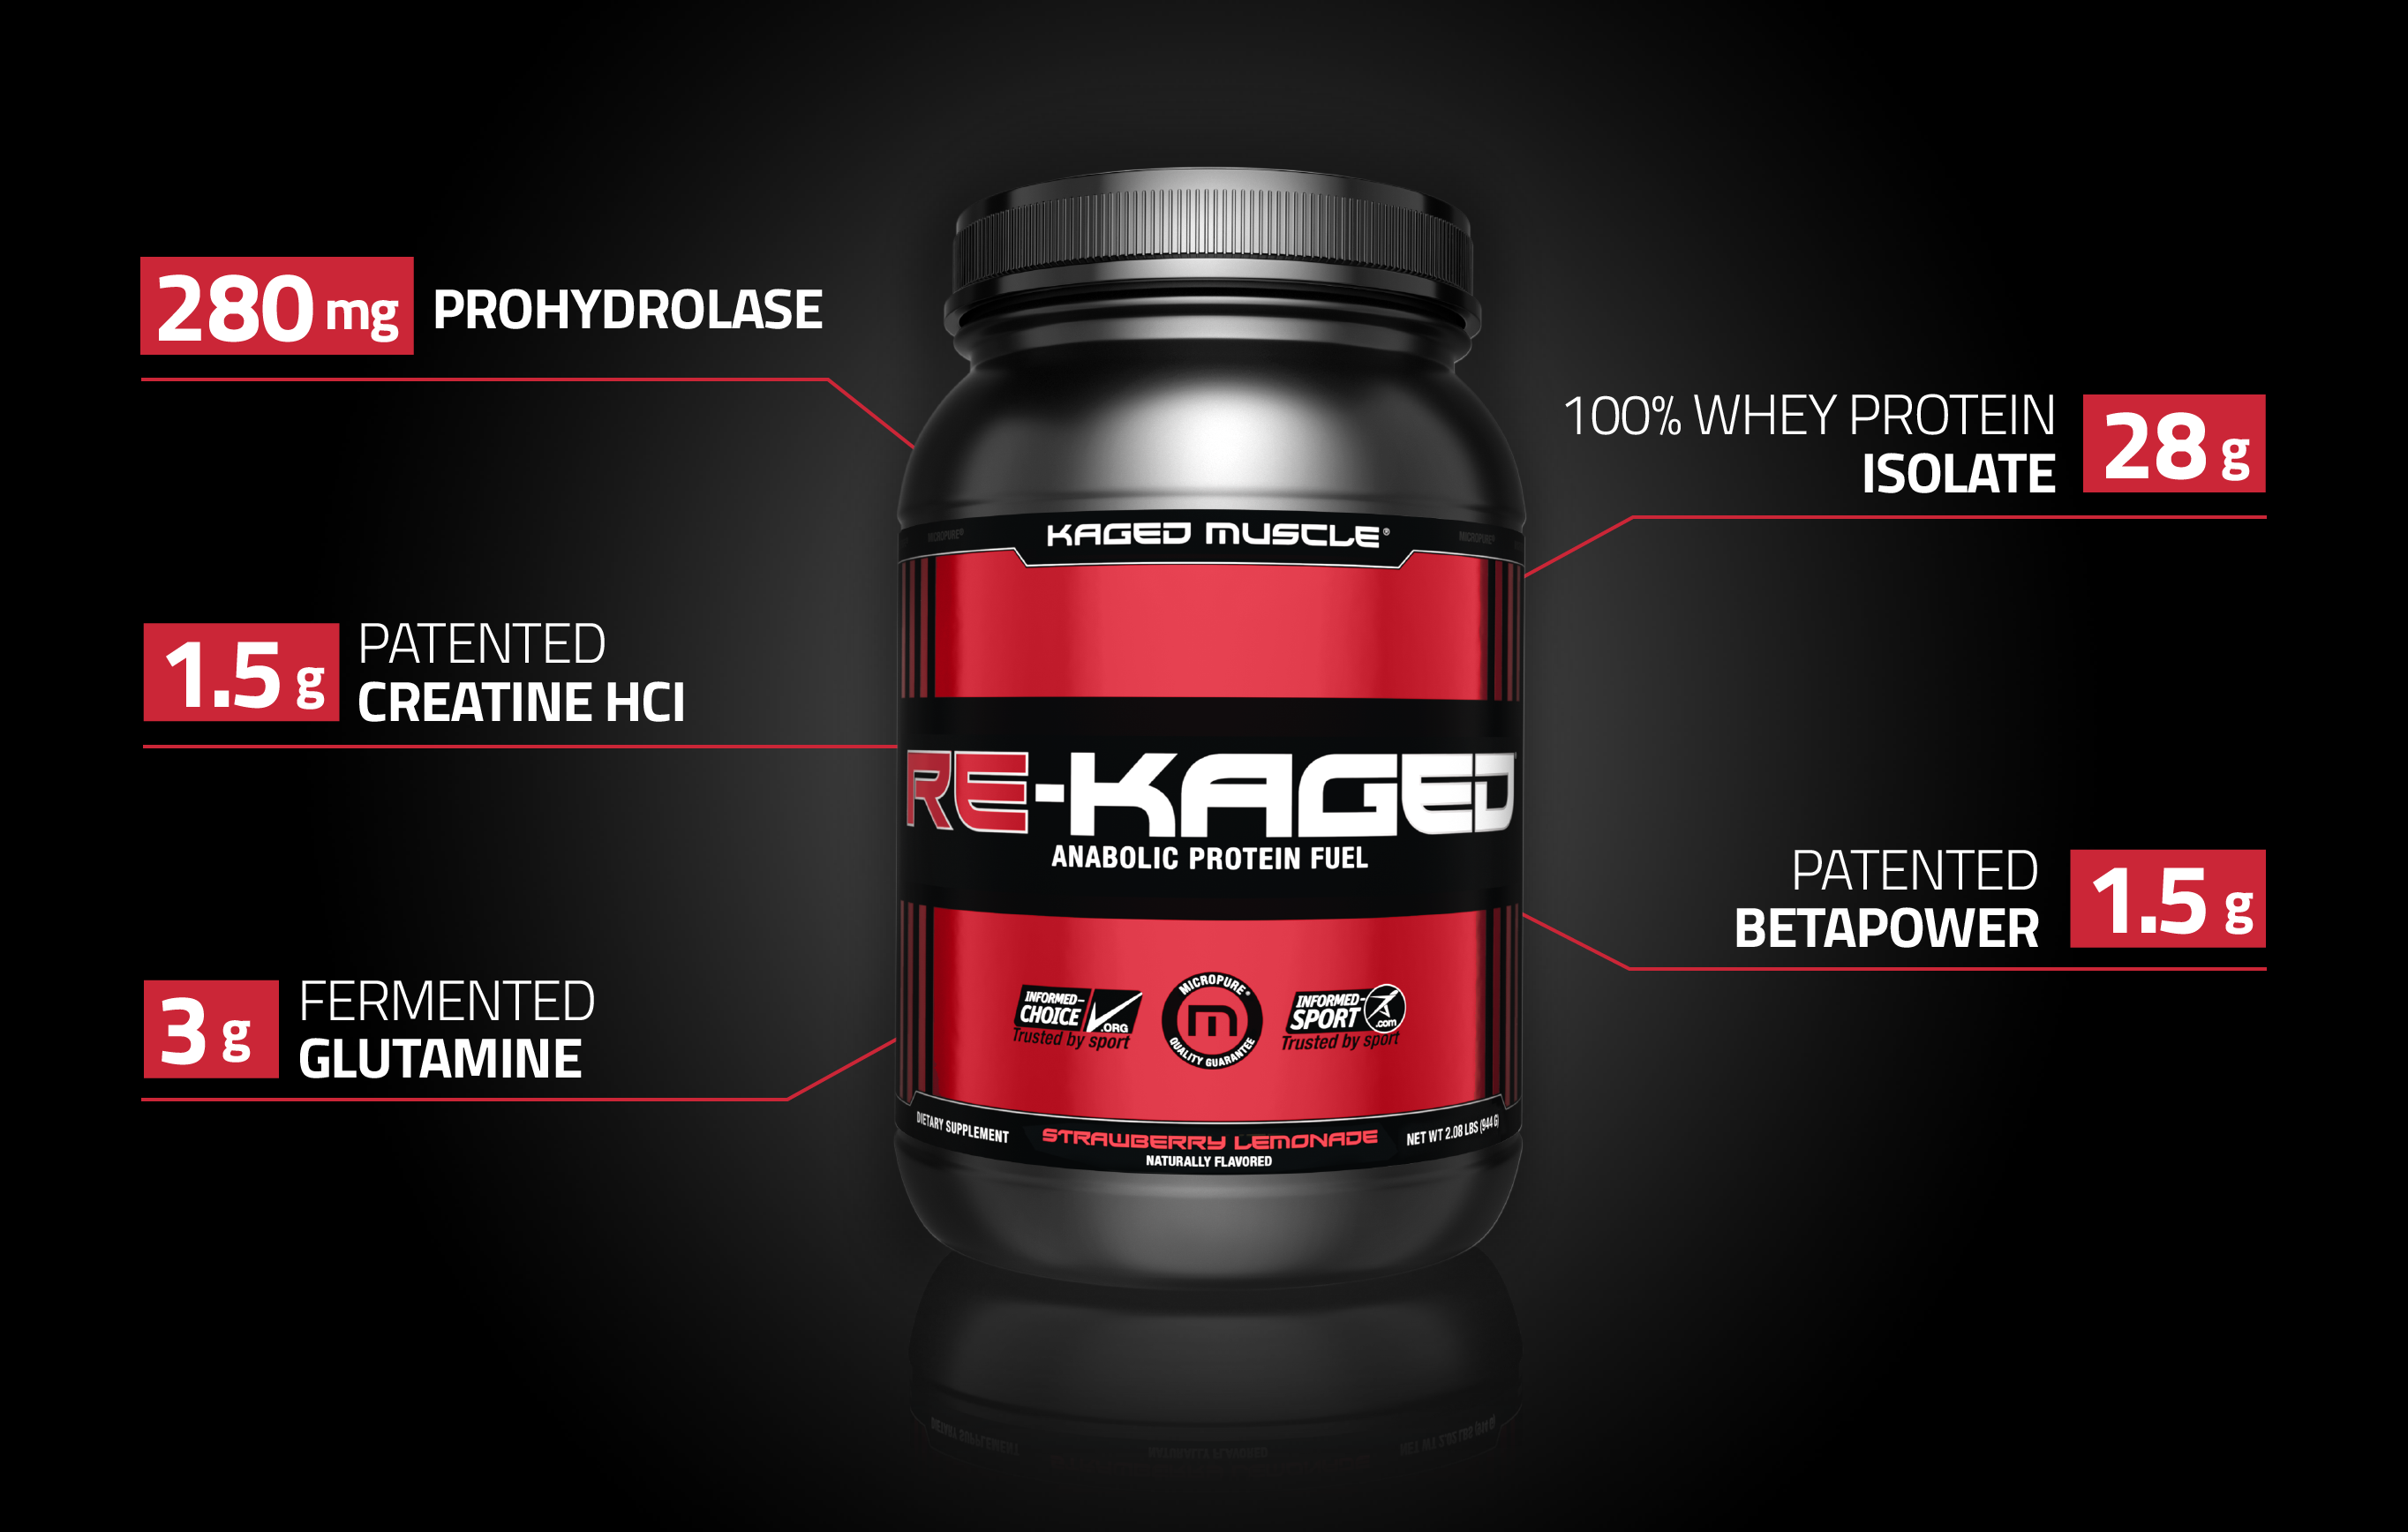 Kaged Muscle Re-Kaged - Post Workout and Recovery Supplement